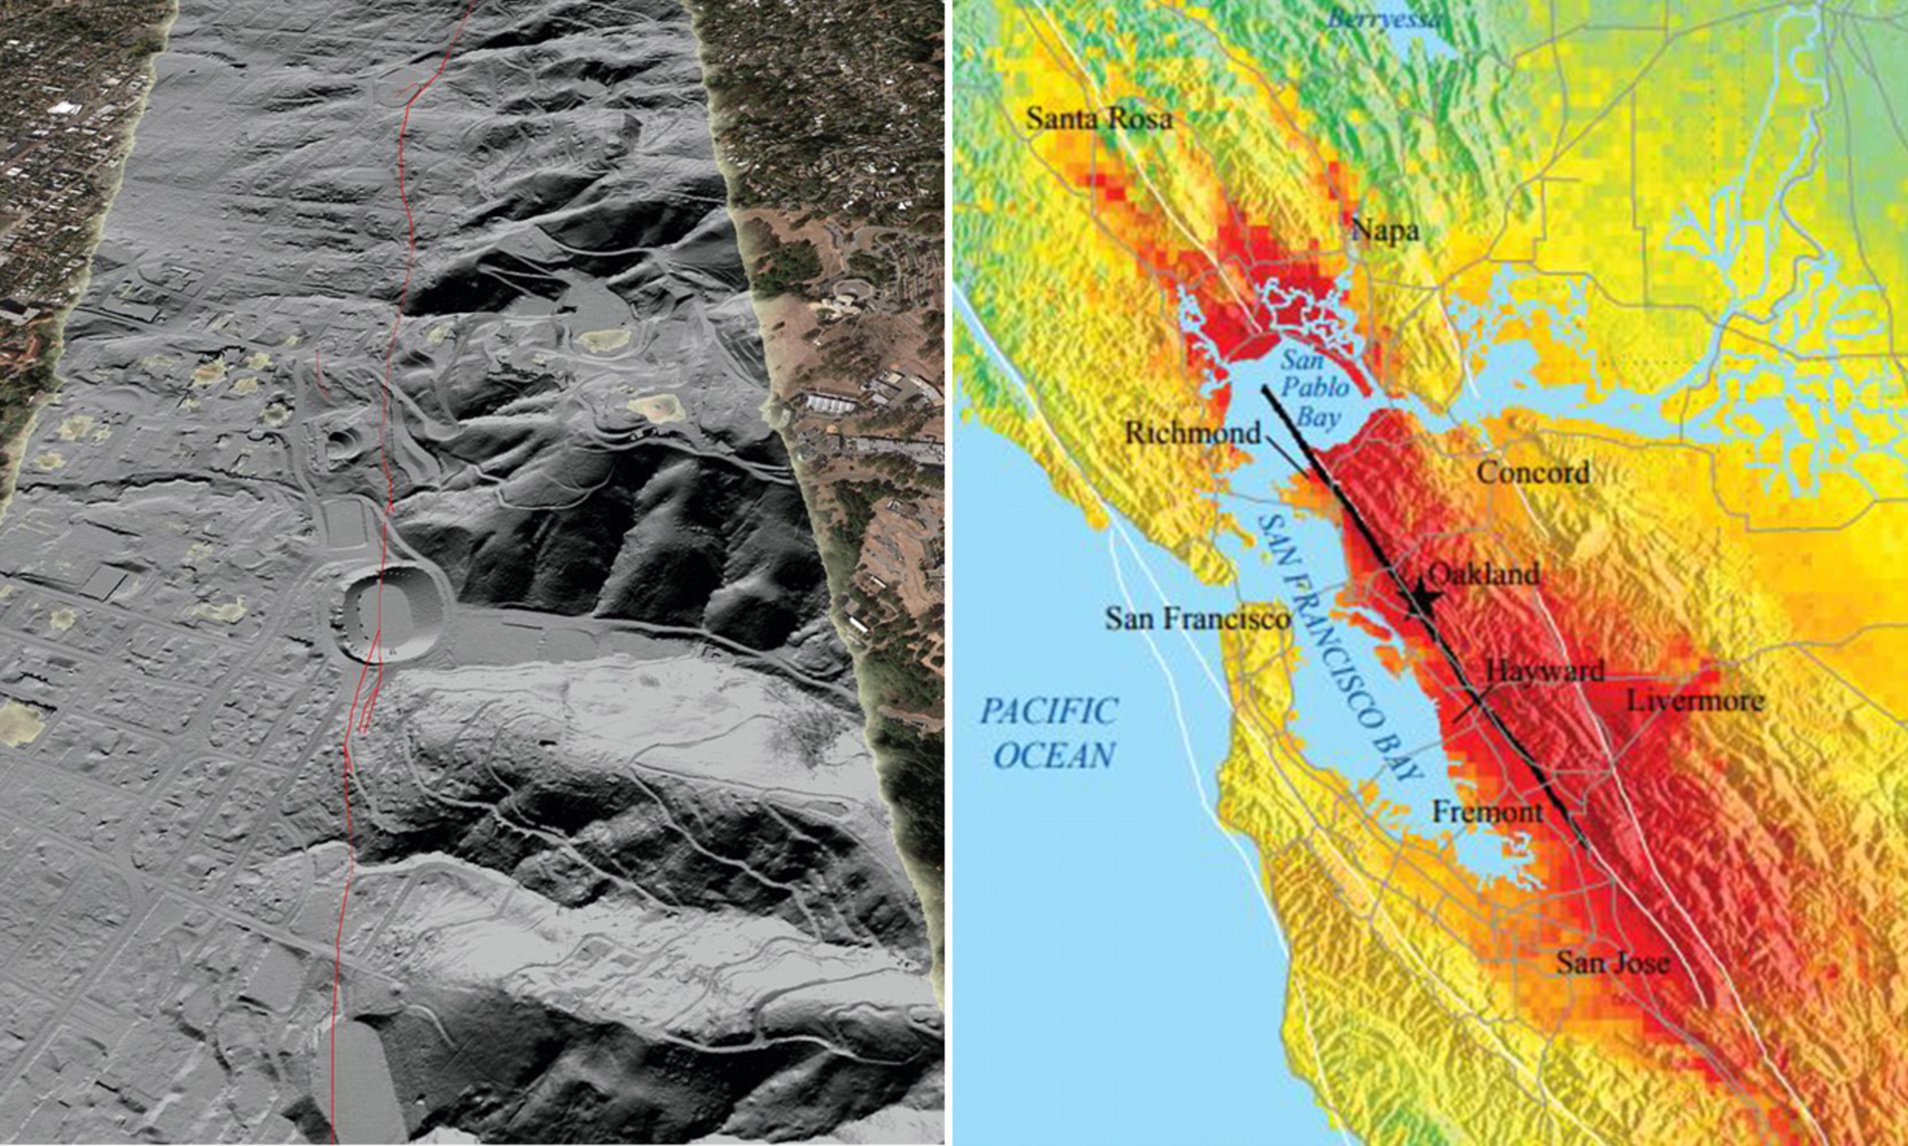 San Francisco Bay Area Fault Is A 'tectonic Time Bomb